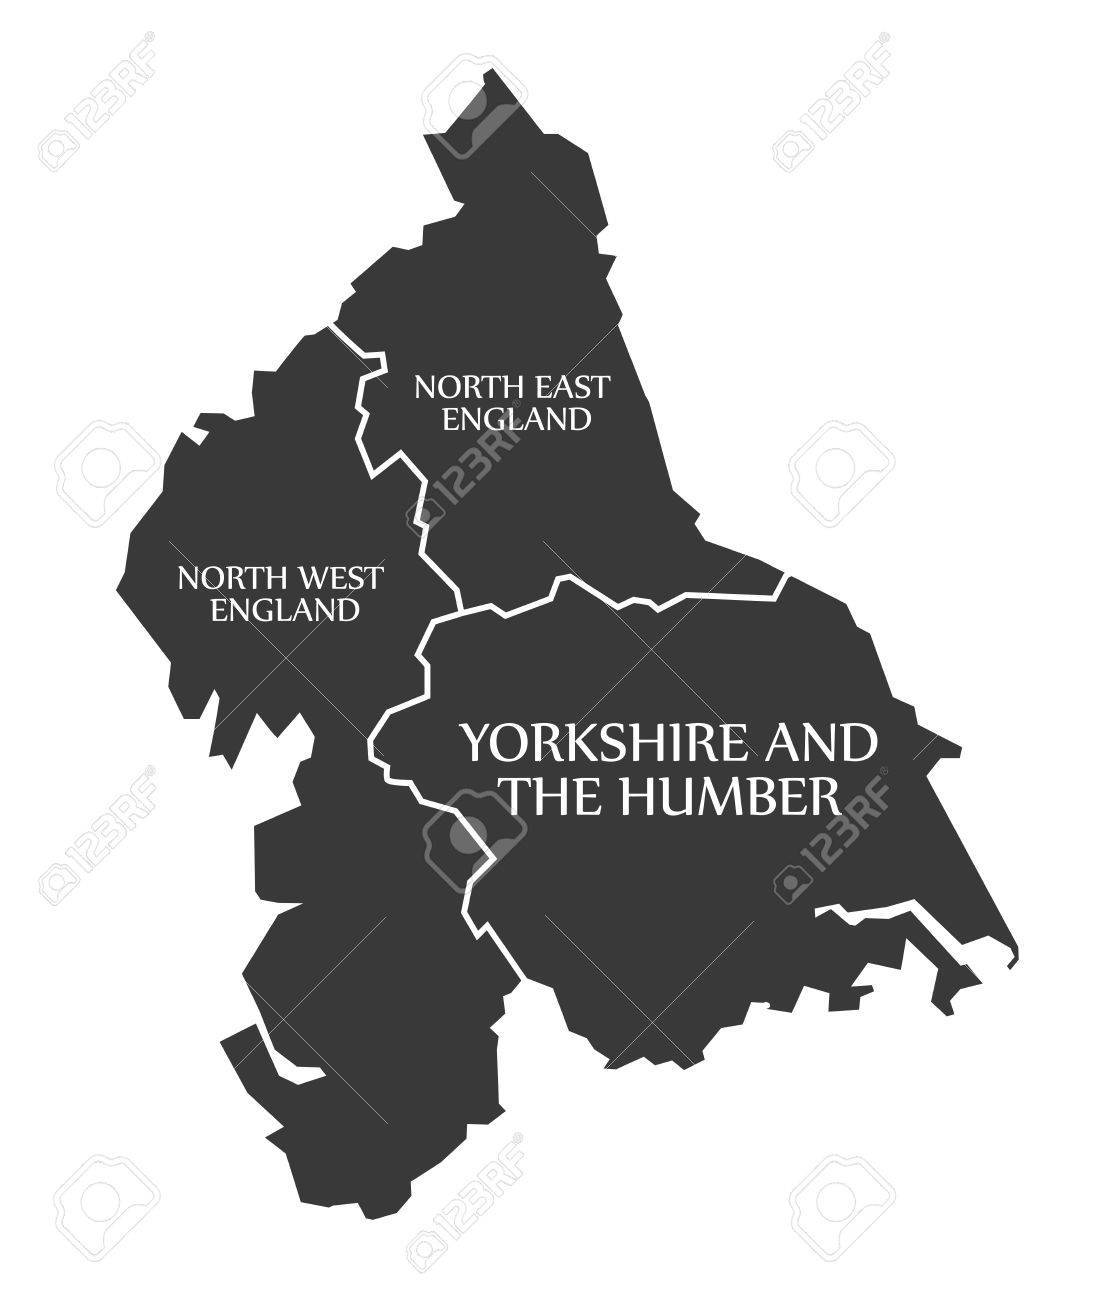 north east and north west england yorkshire and the humber map uk illustration stock vector